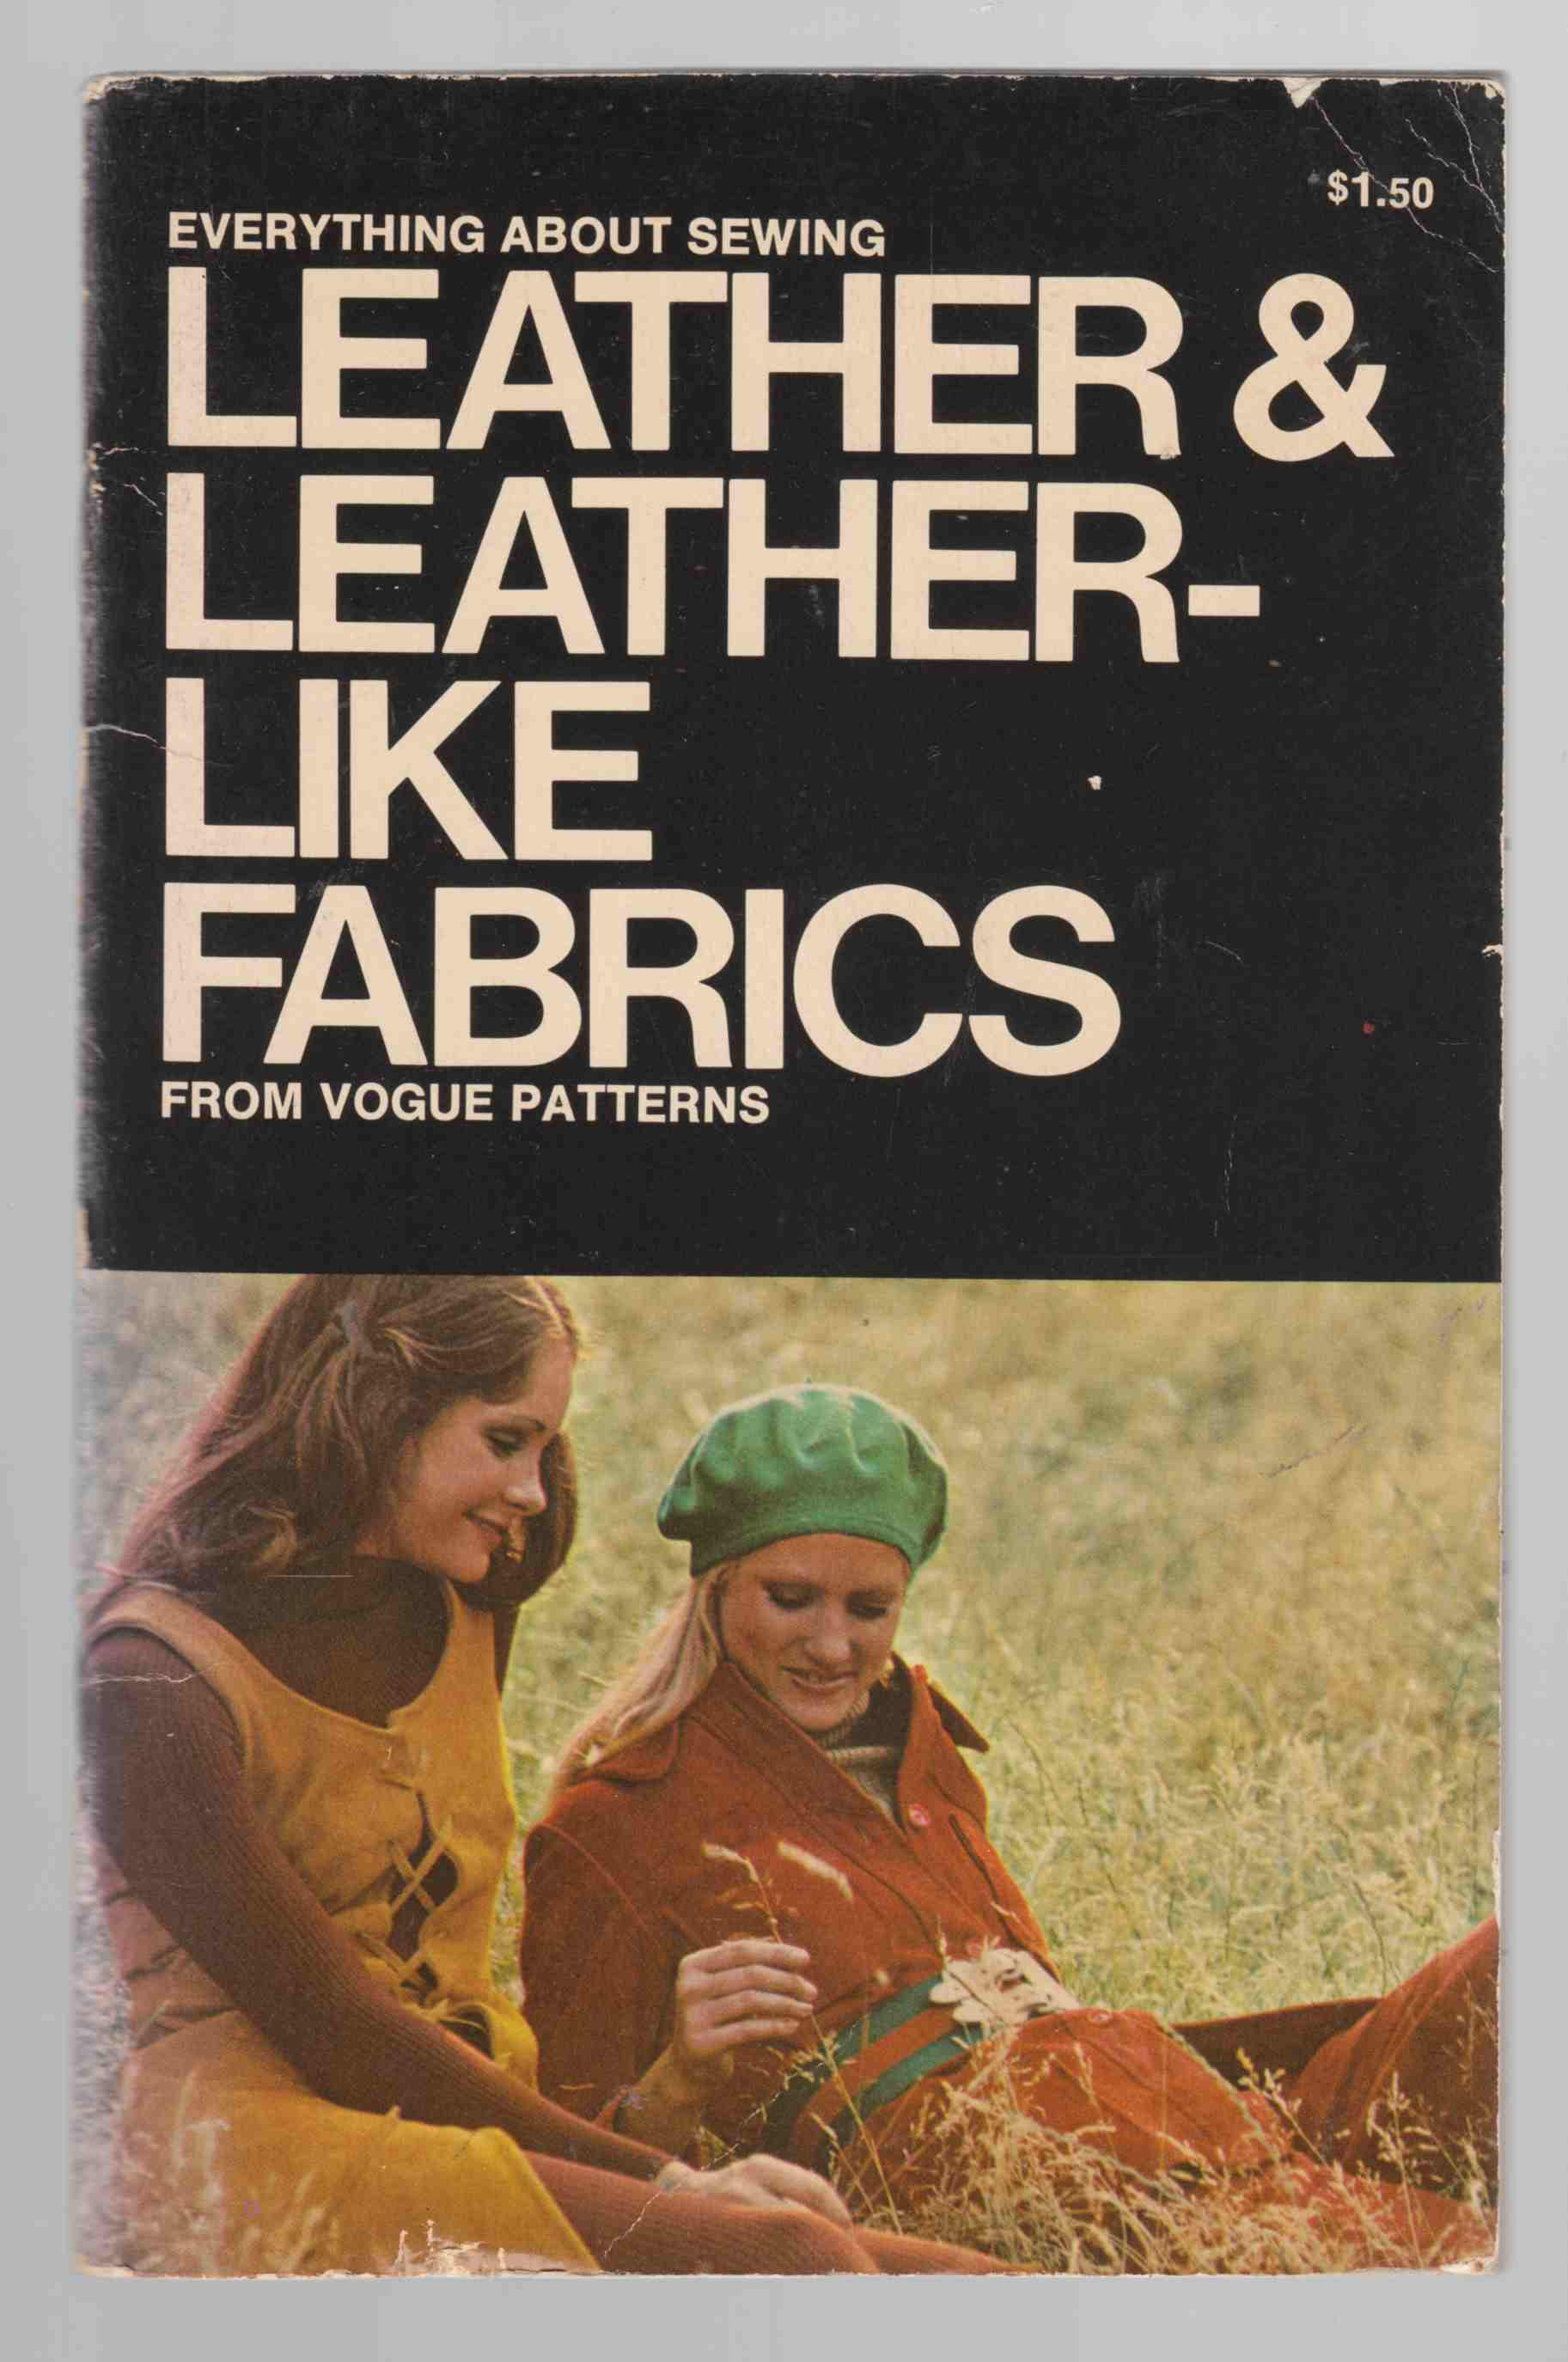 Image for Everything about Sewing: Leather & Leather-Like Fabrics from Vogue Patterns